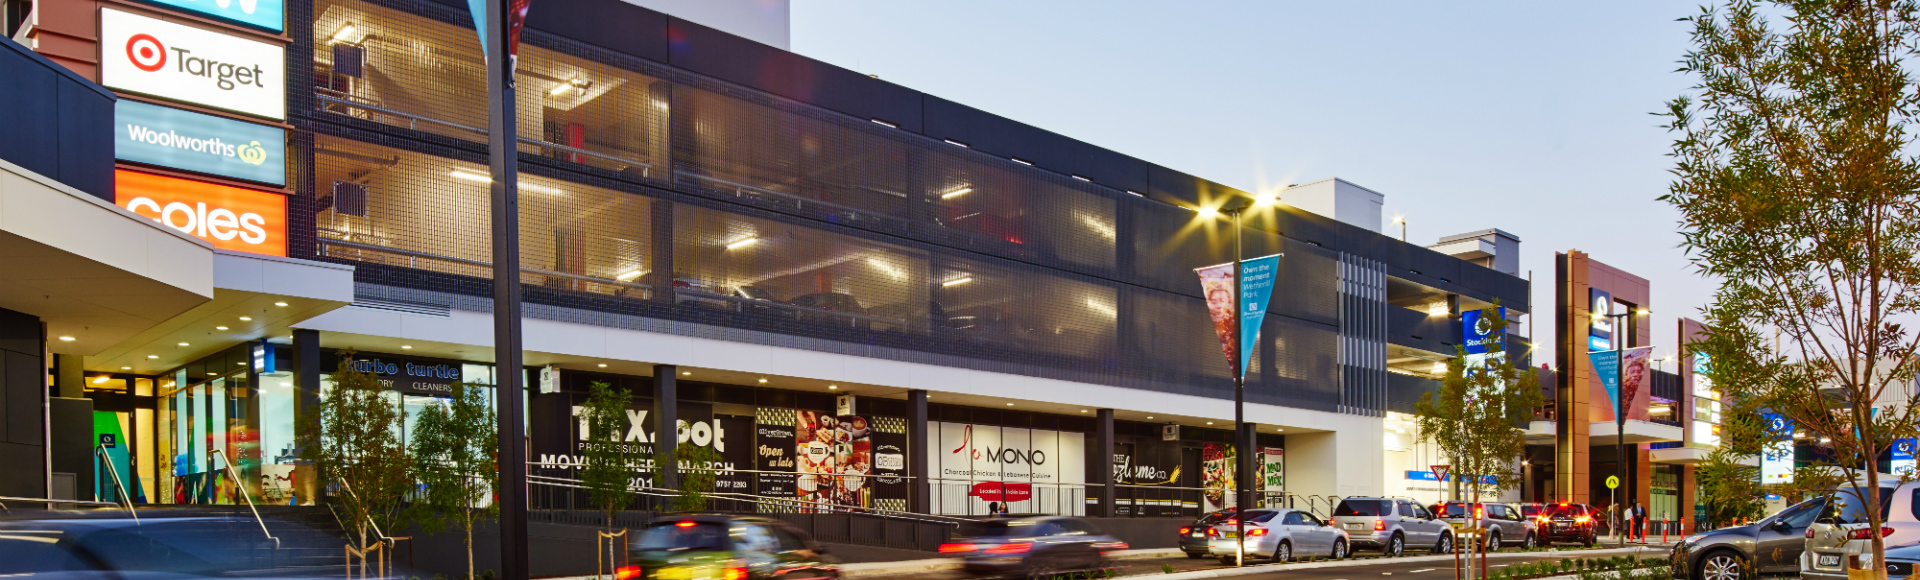 Wetherill Park Exterior Image of Main Entrance and Carpark  1920x580px